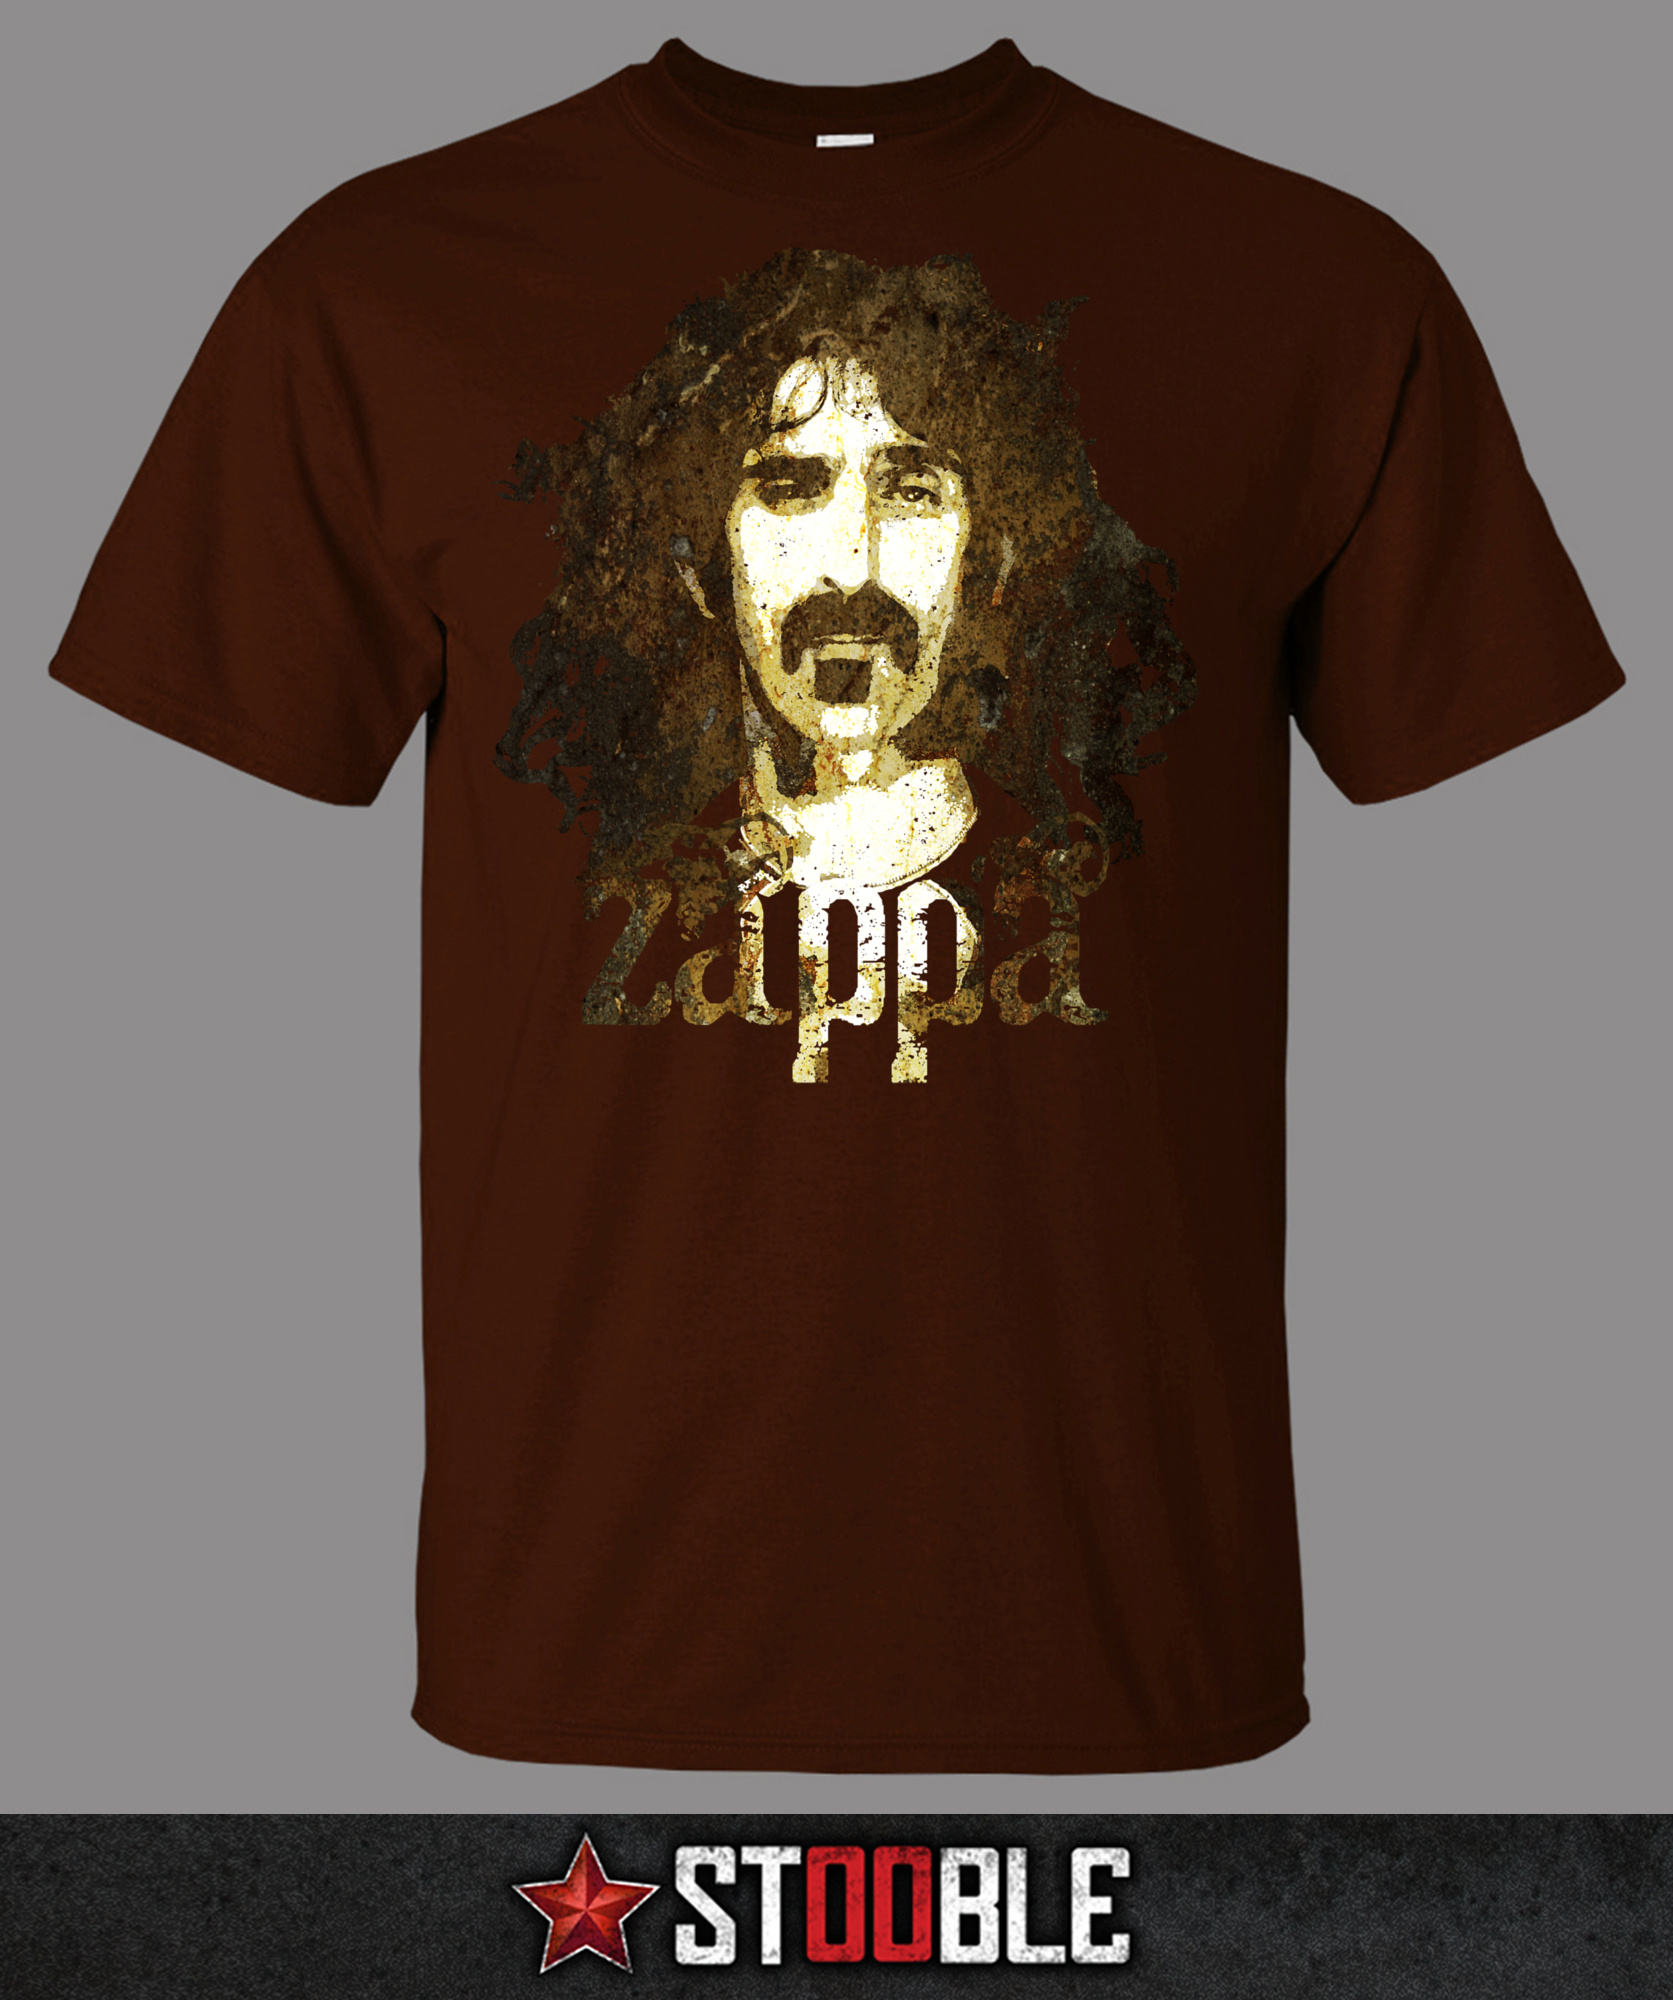 Frank Zappa T Shirt New Direct From Manufacturer Ebay